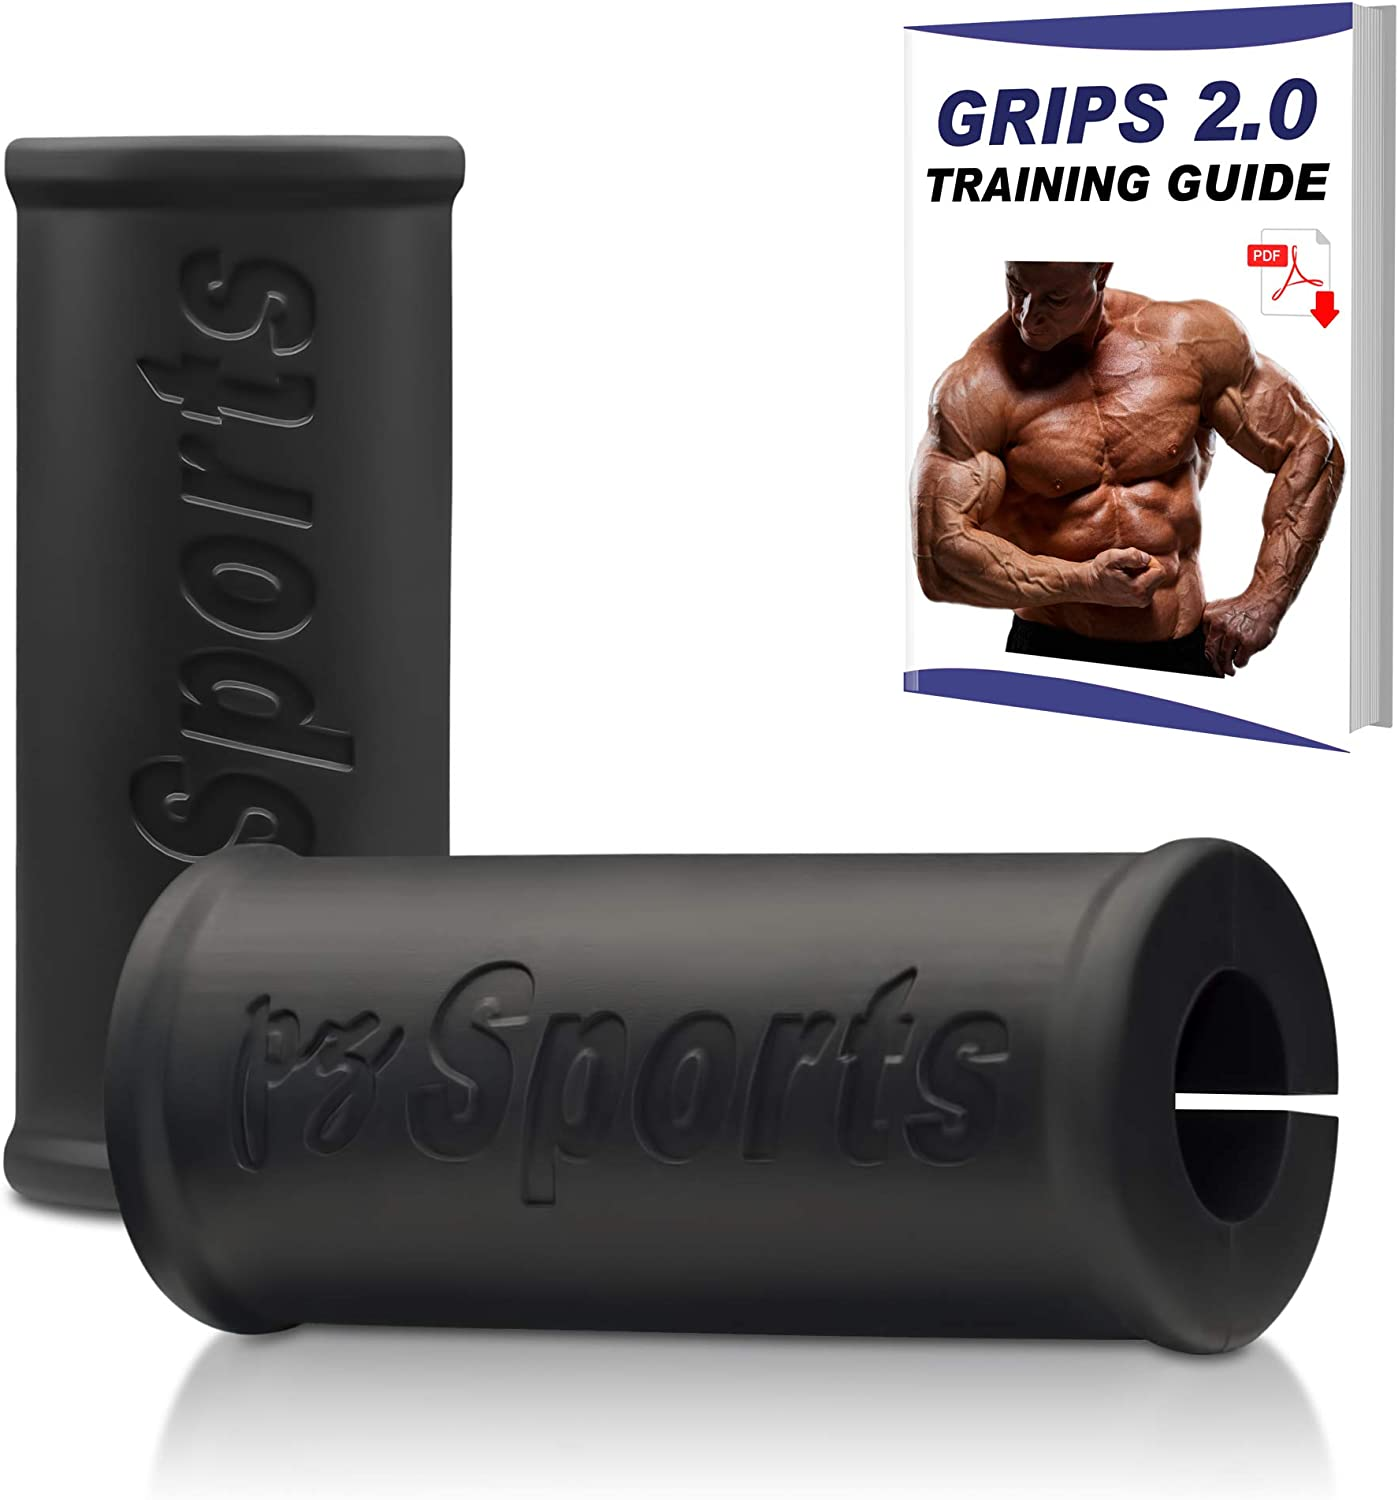 Joagym Manus Fat Grip – Thick Fat Bar Training Adapter for Muscle Growth and Strength